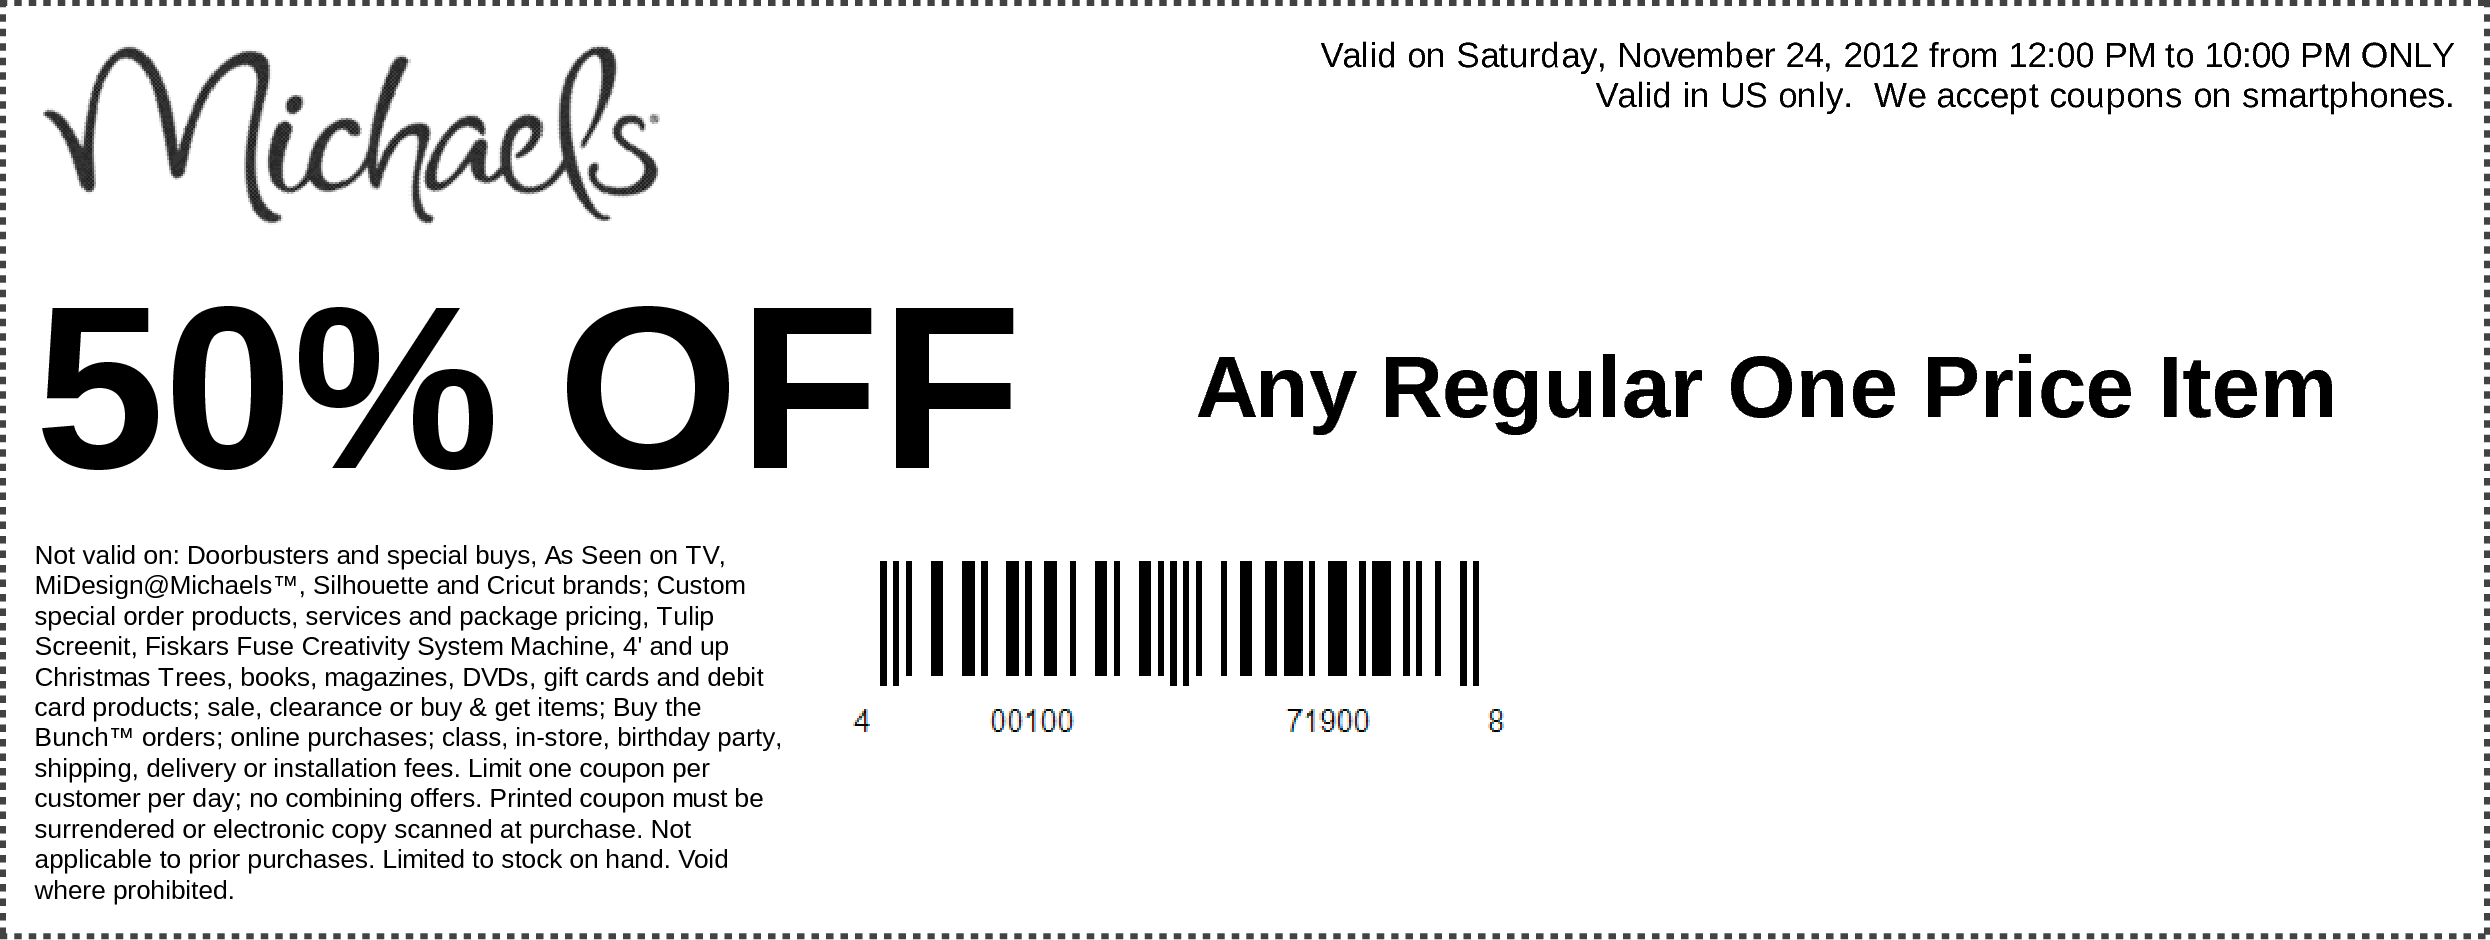 50% Off Any One Regular Price Item Use Michaels Coupon